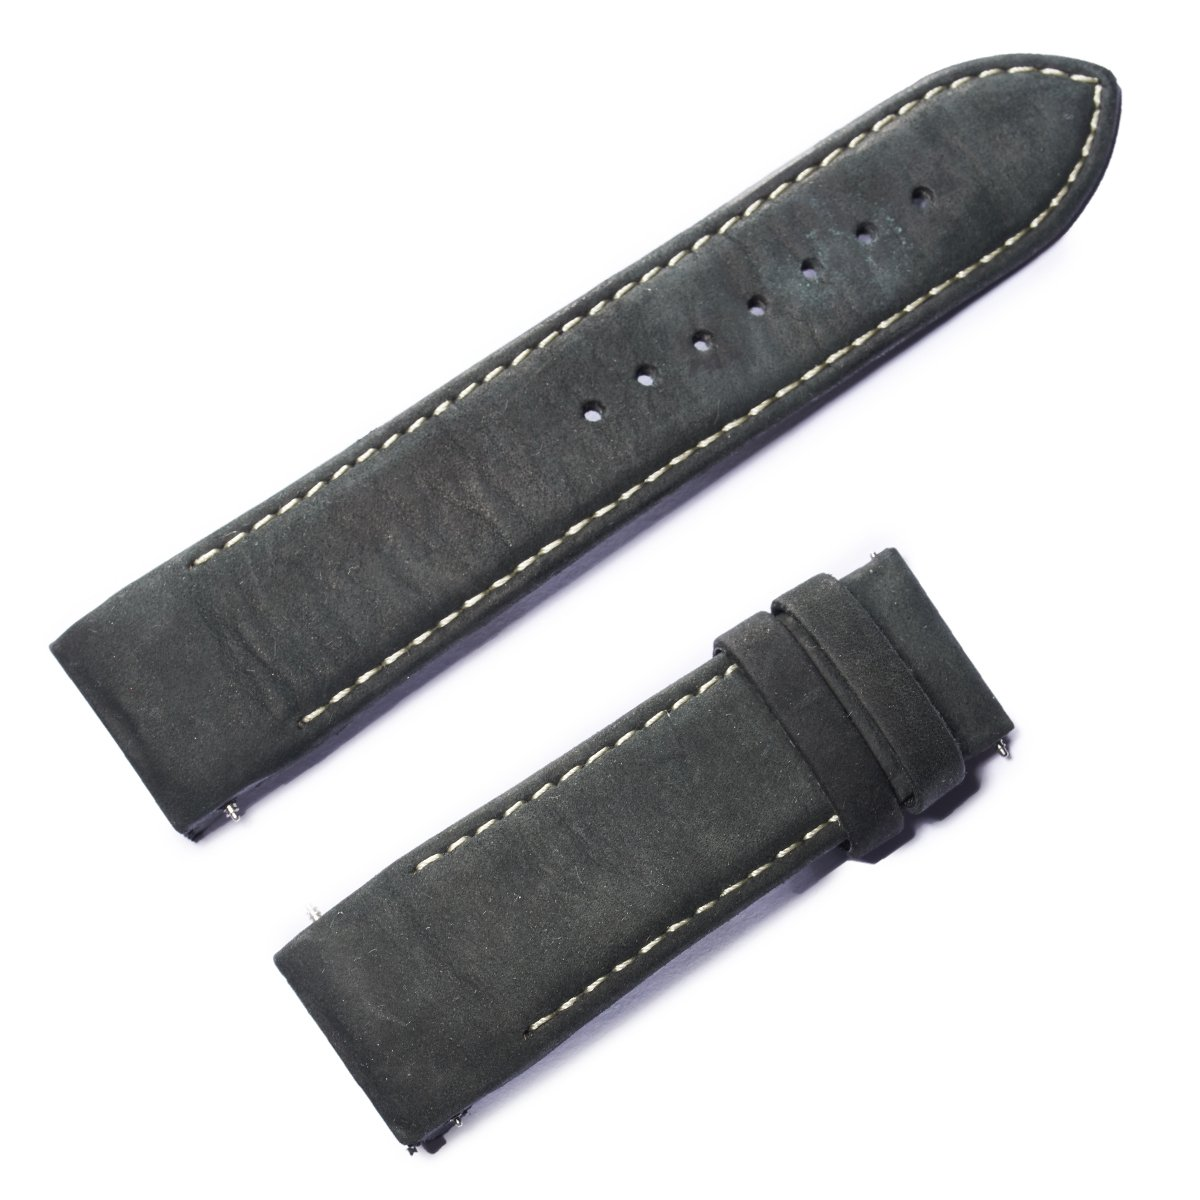 REEF TIGER RT 24mm Width Black Leather Watch Strap Black Genuine Leather Watch Wristband for Men RGA703